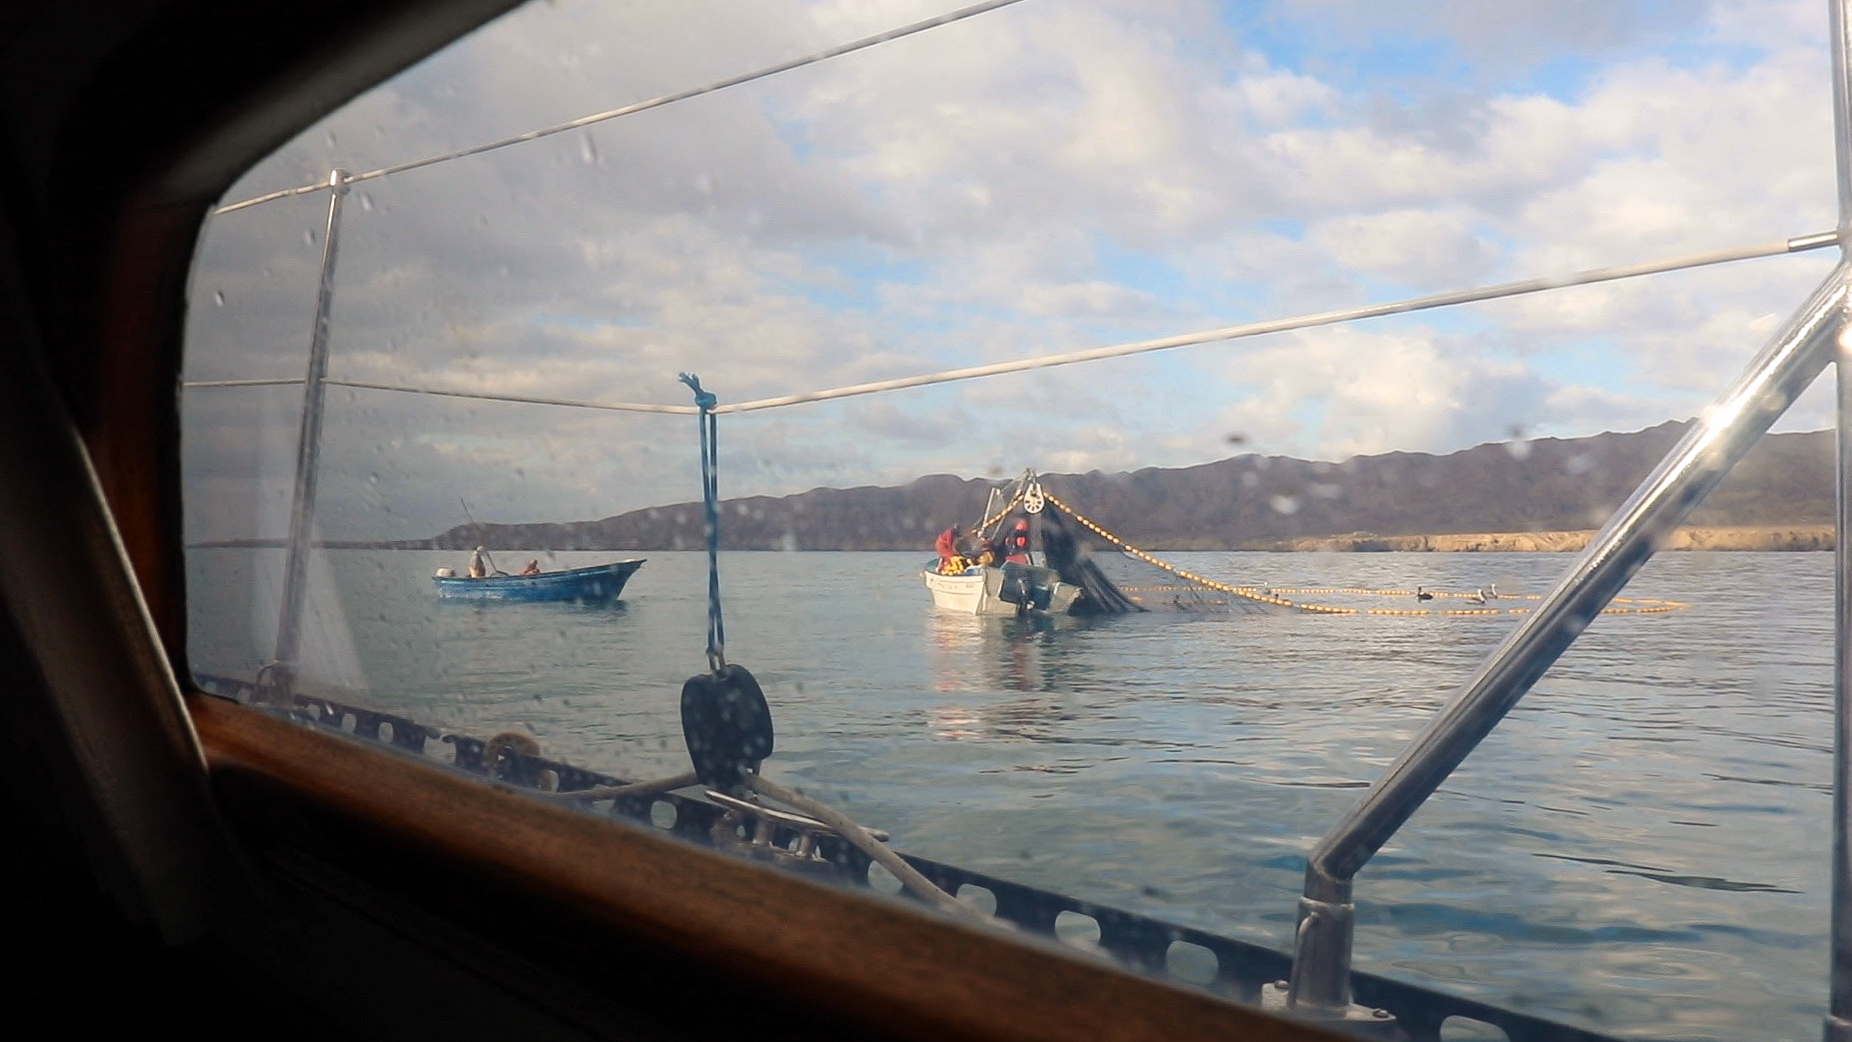 Woke up each morning to the local fishermen fishing near our boat.